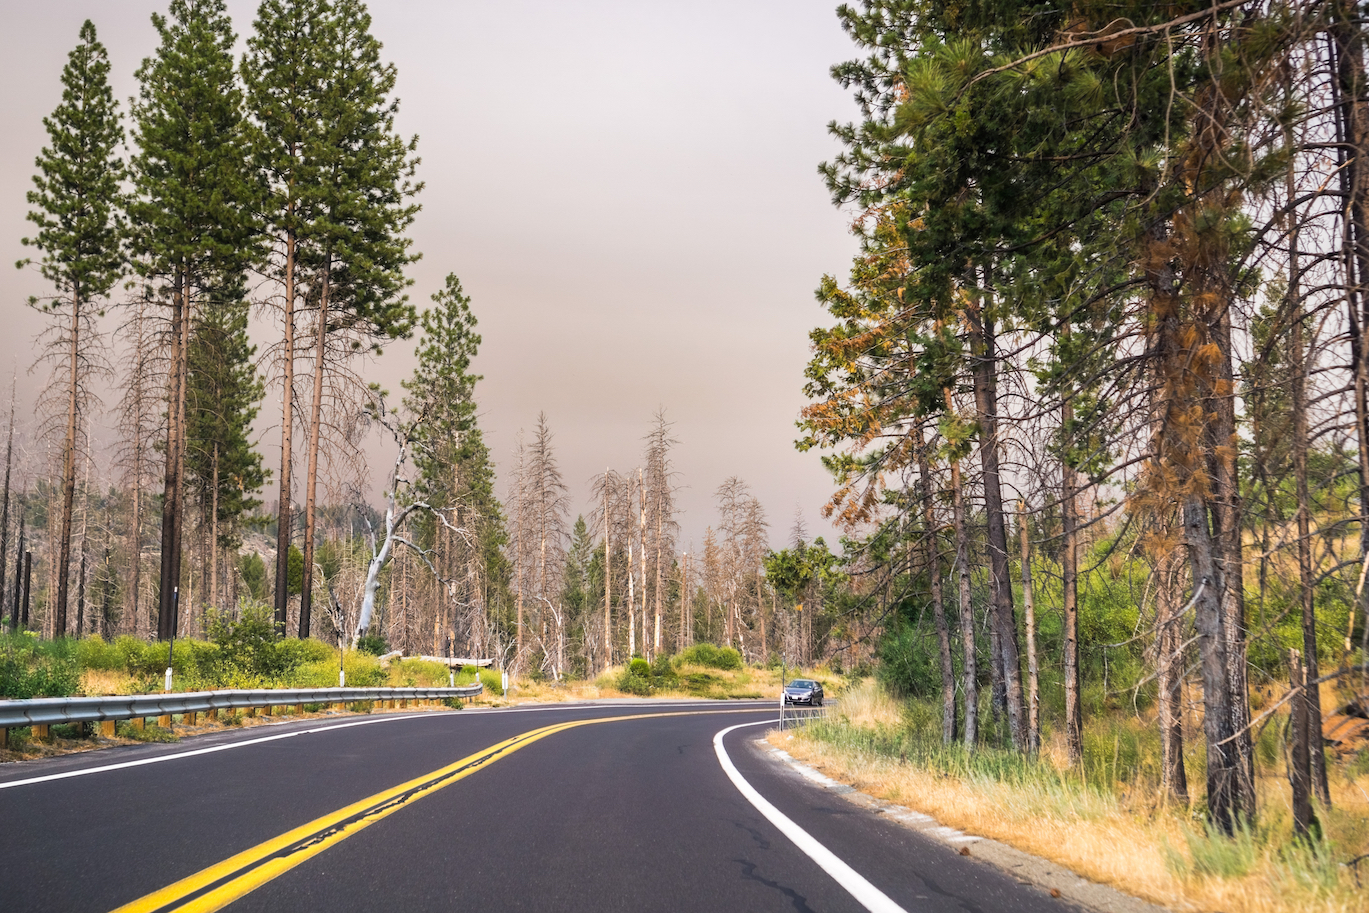 On Wednesday, July 25th, the Ferguson Fire in California intensified, prompting park closures around Yosemite Valley.